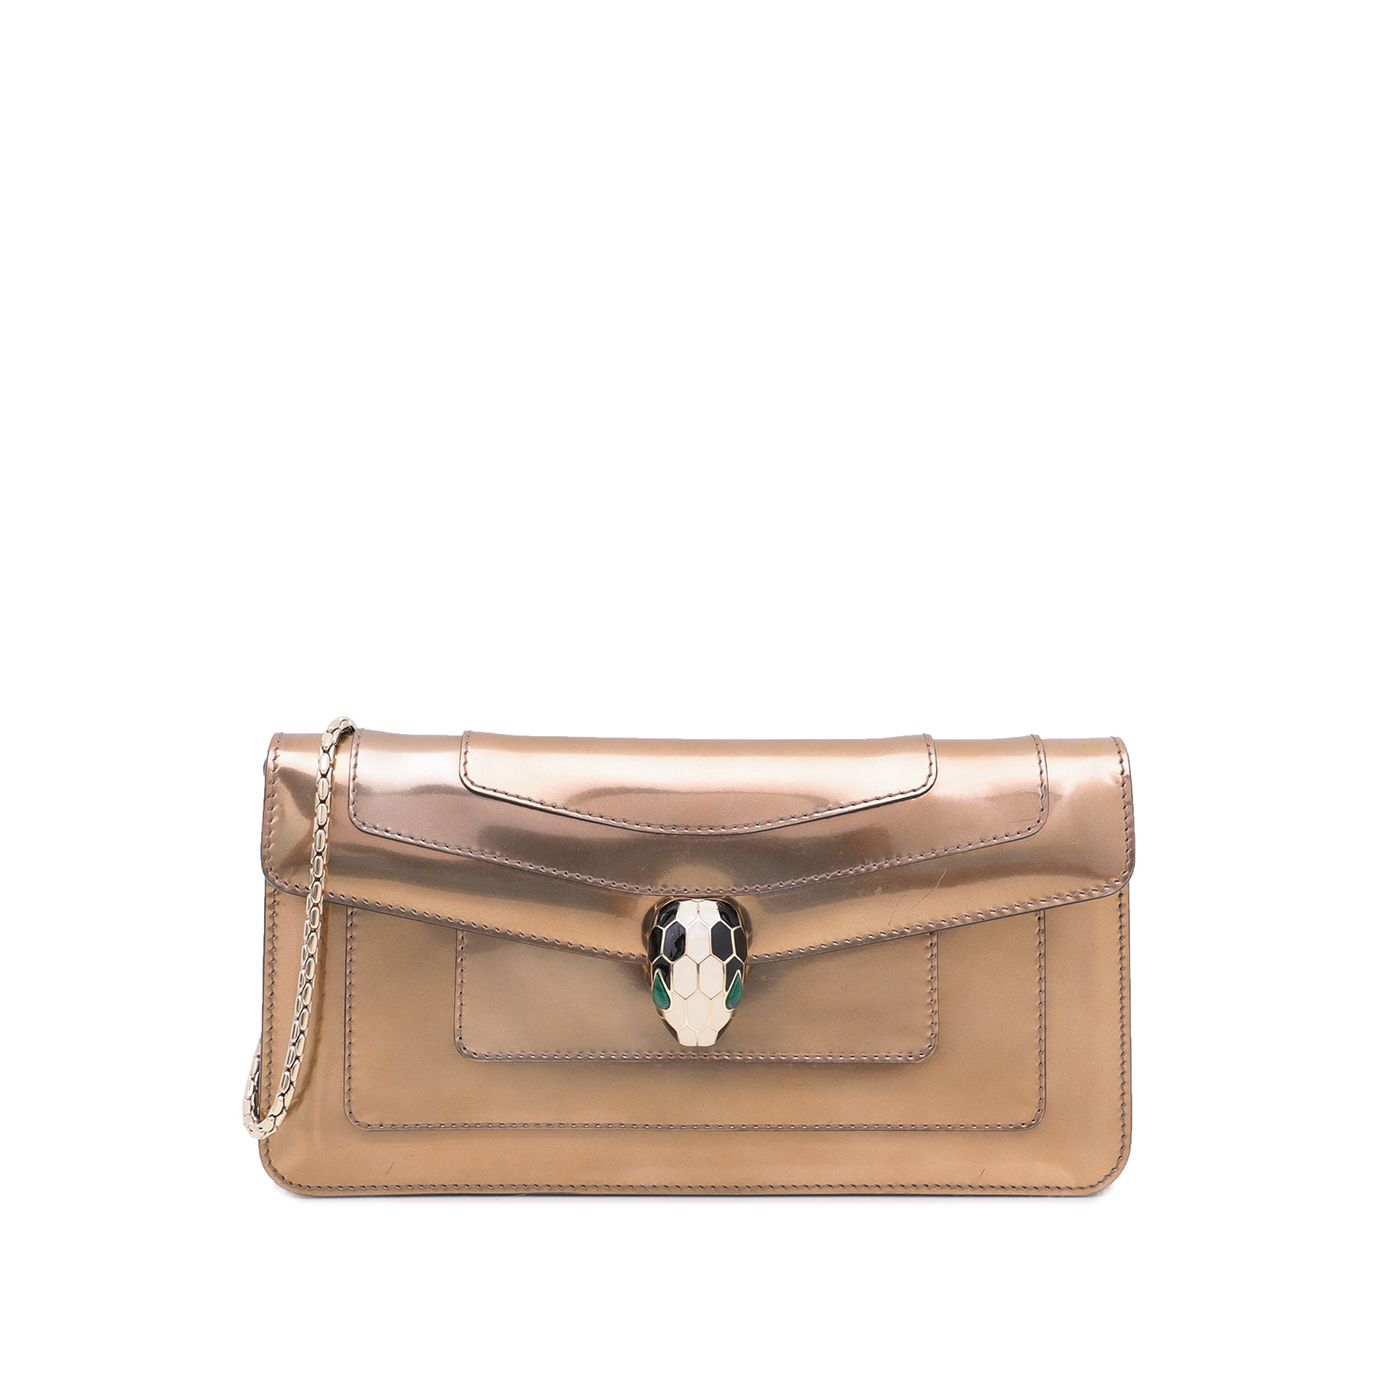 Bvlgari Bronze Serpenti Forever Clutch Chain Bag